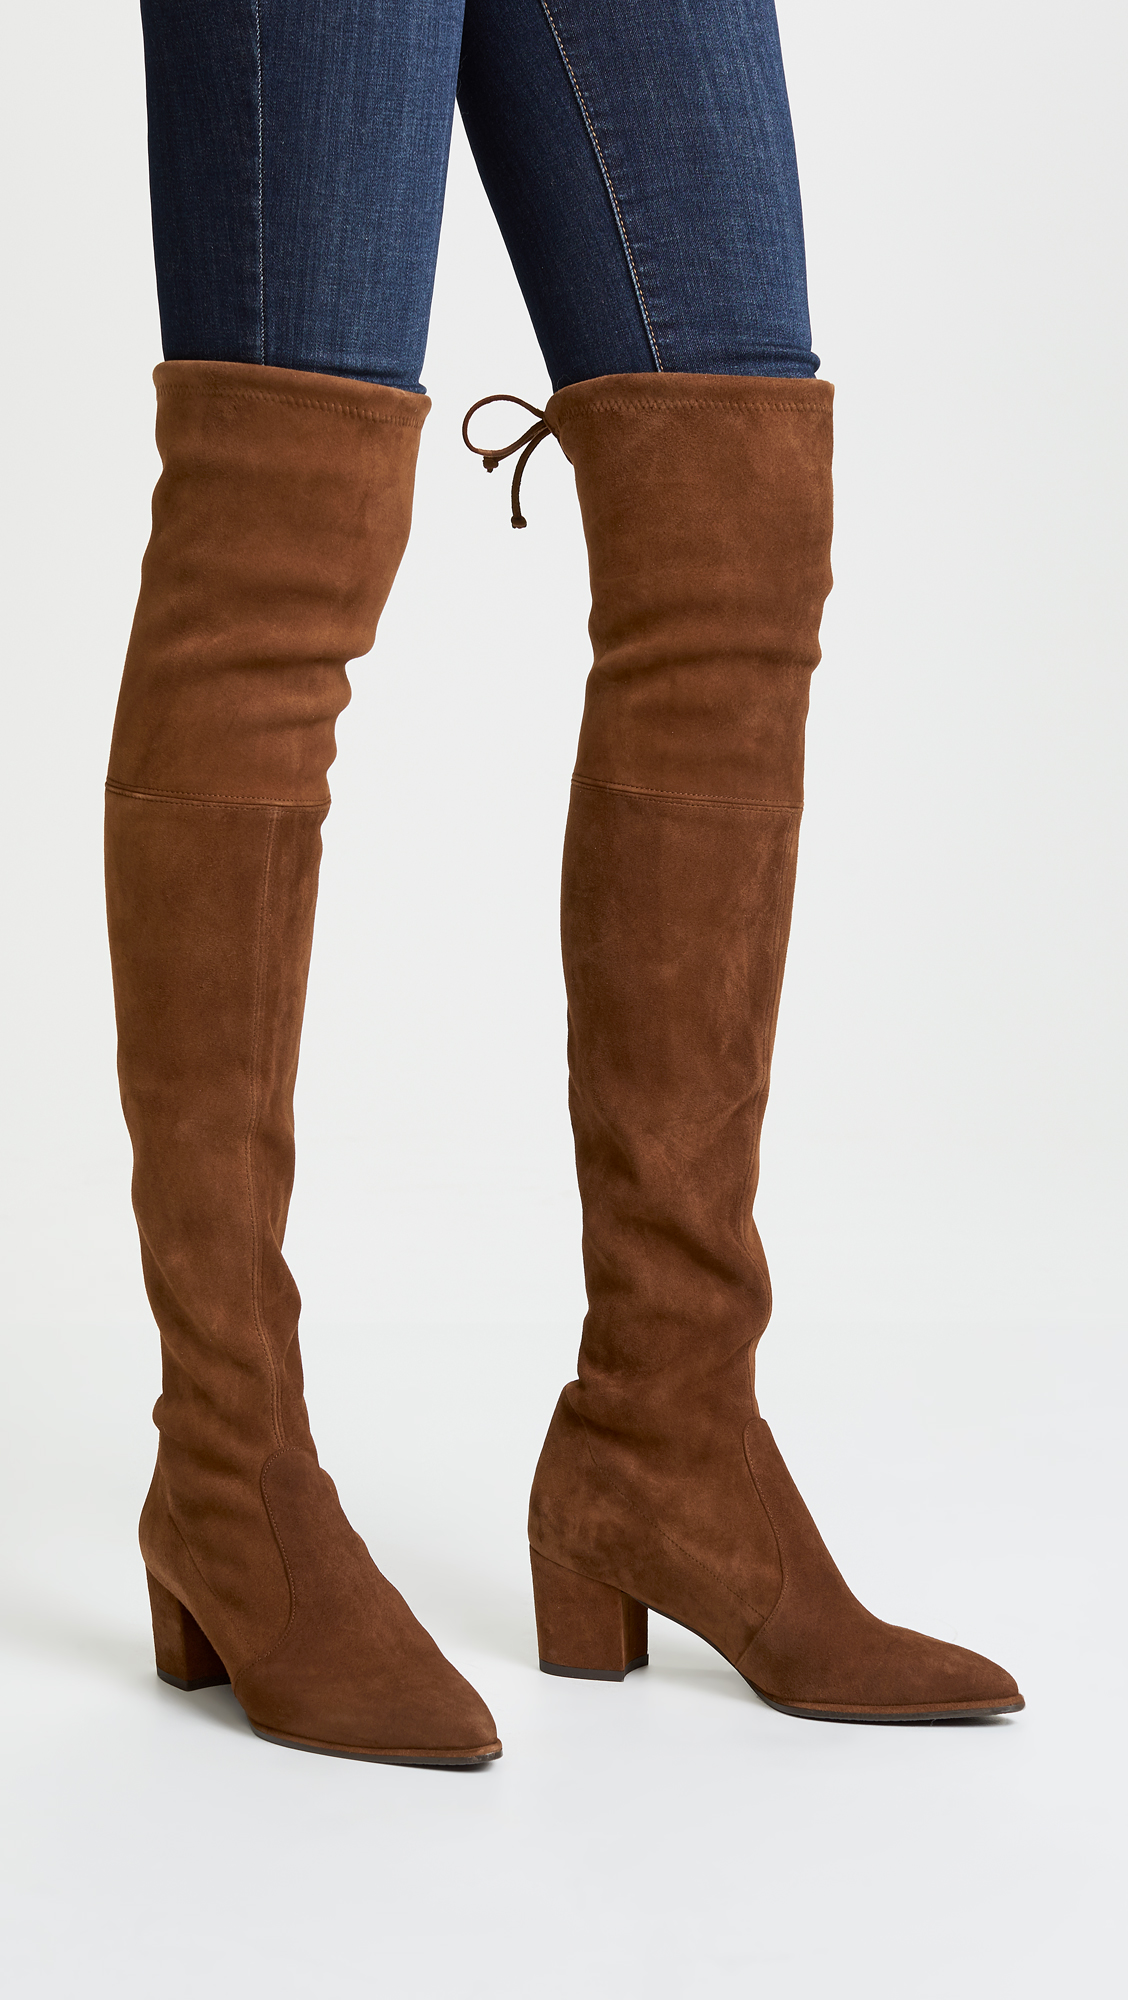 af1bf2ed0ab Stuart Weitzman Thighland Over the Knee Boots